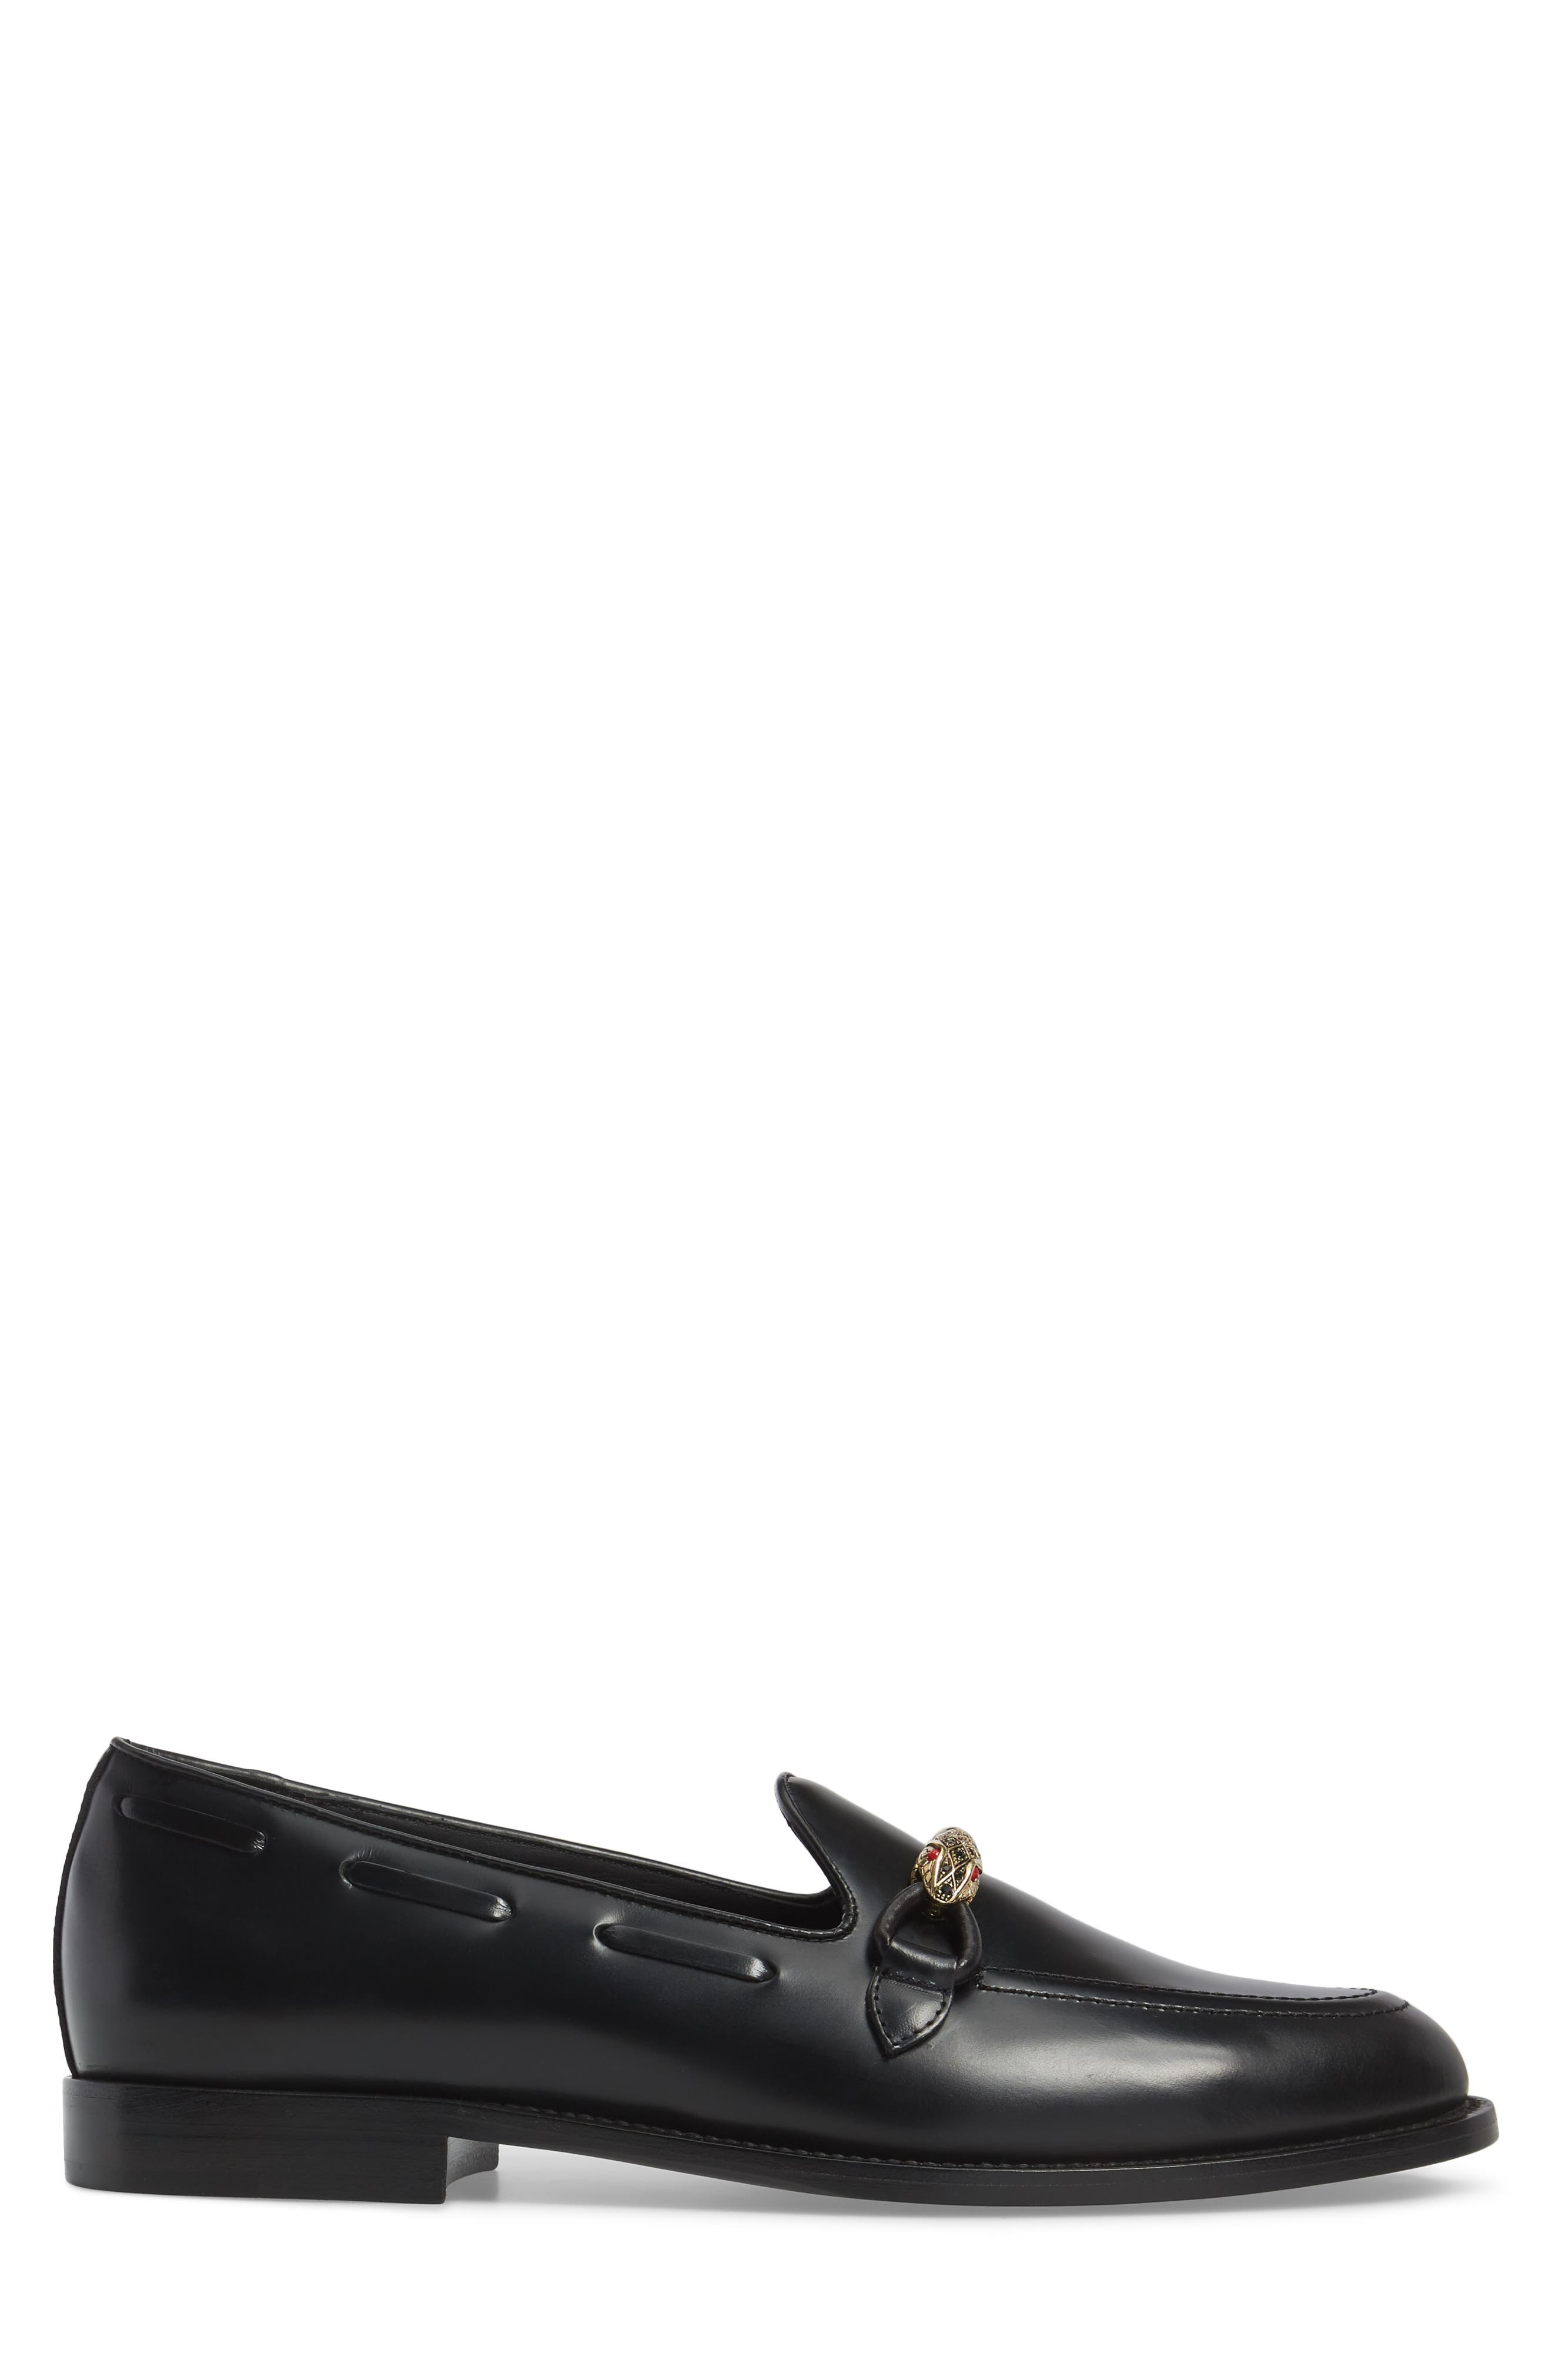 Serpent Bit Loafer,                             Alternate thumbnail 3, color,                             Nero Leather